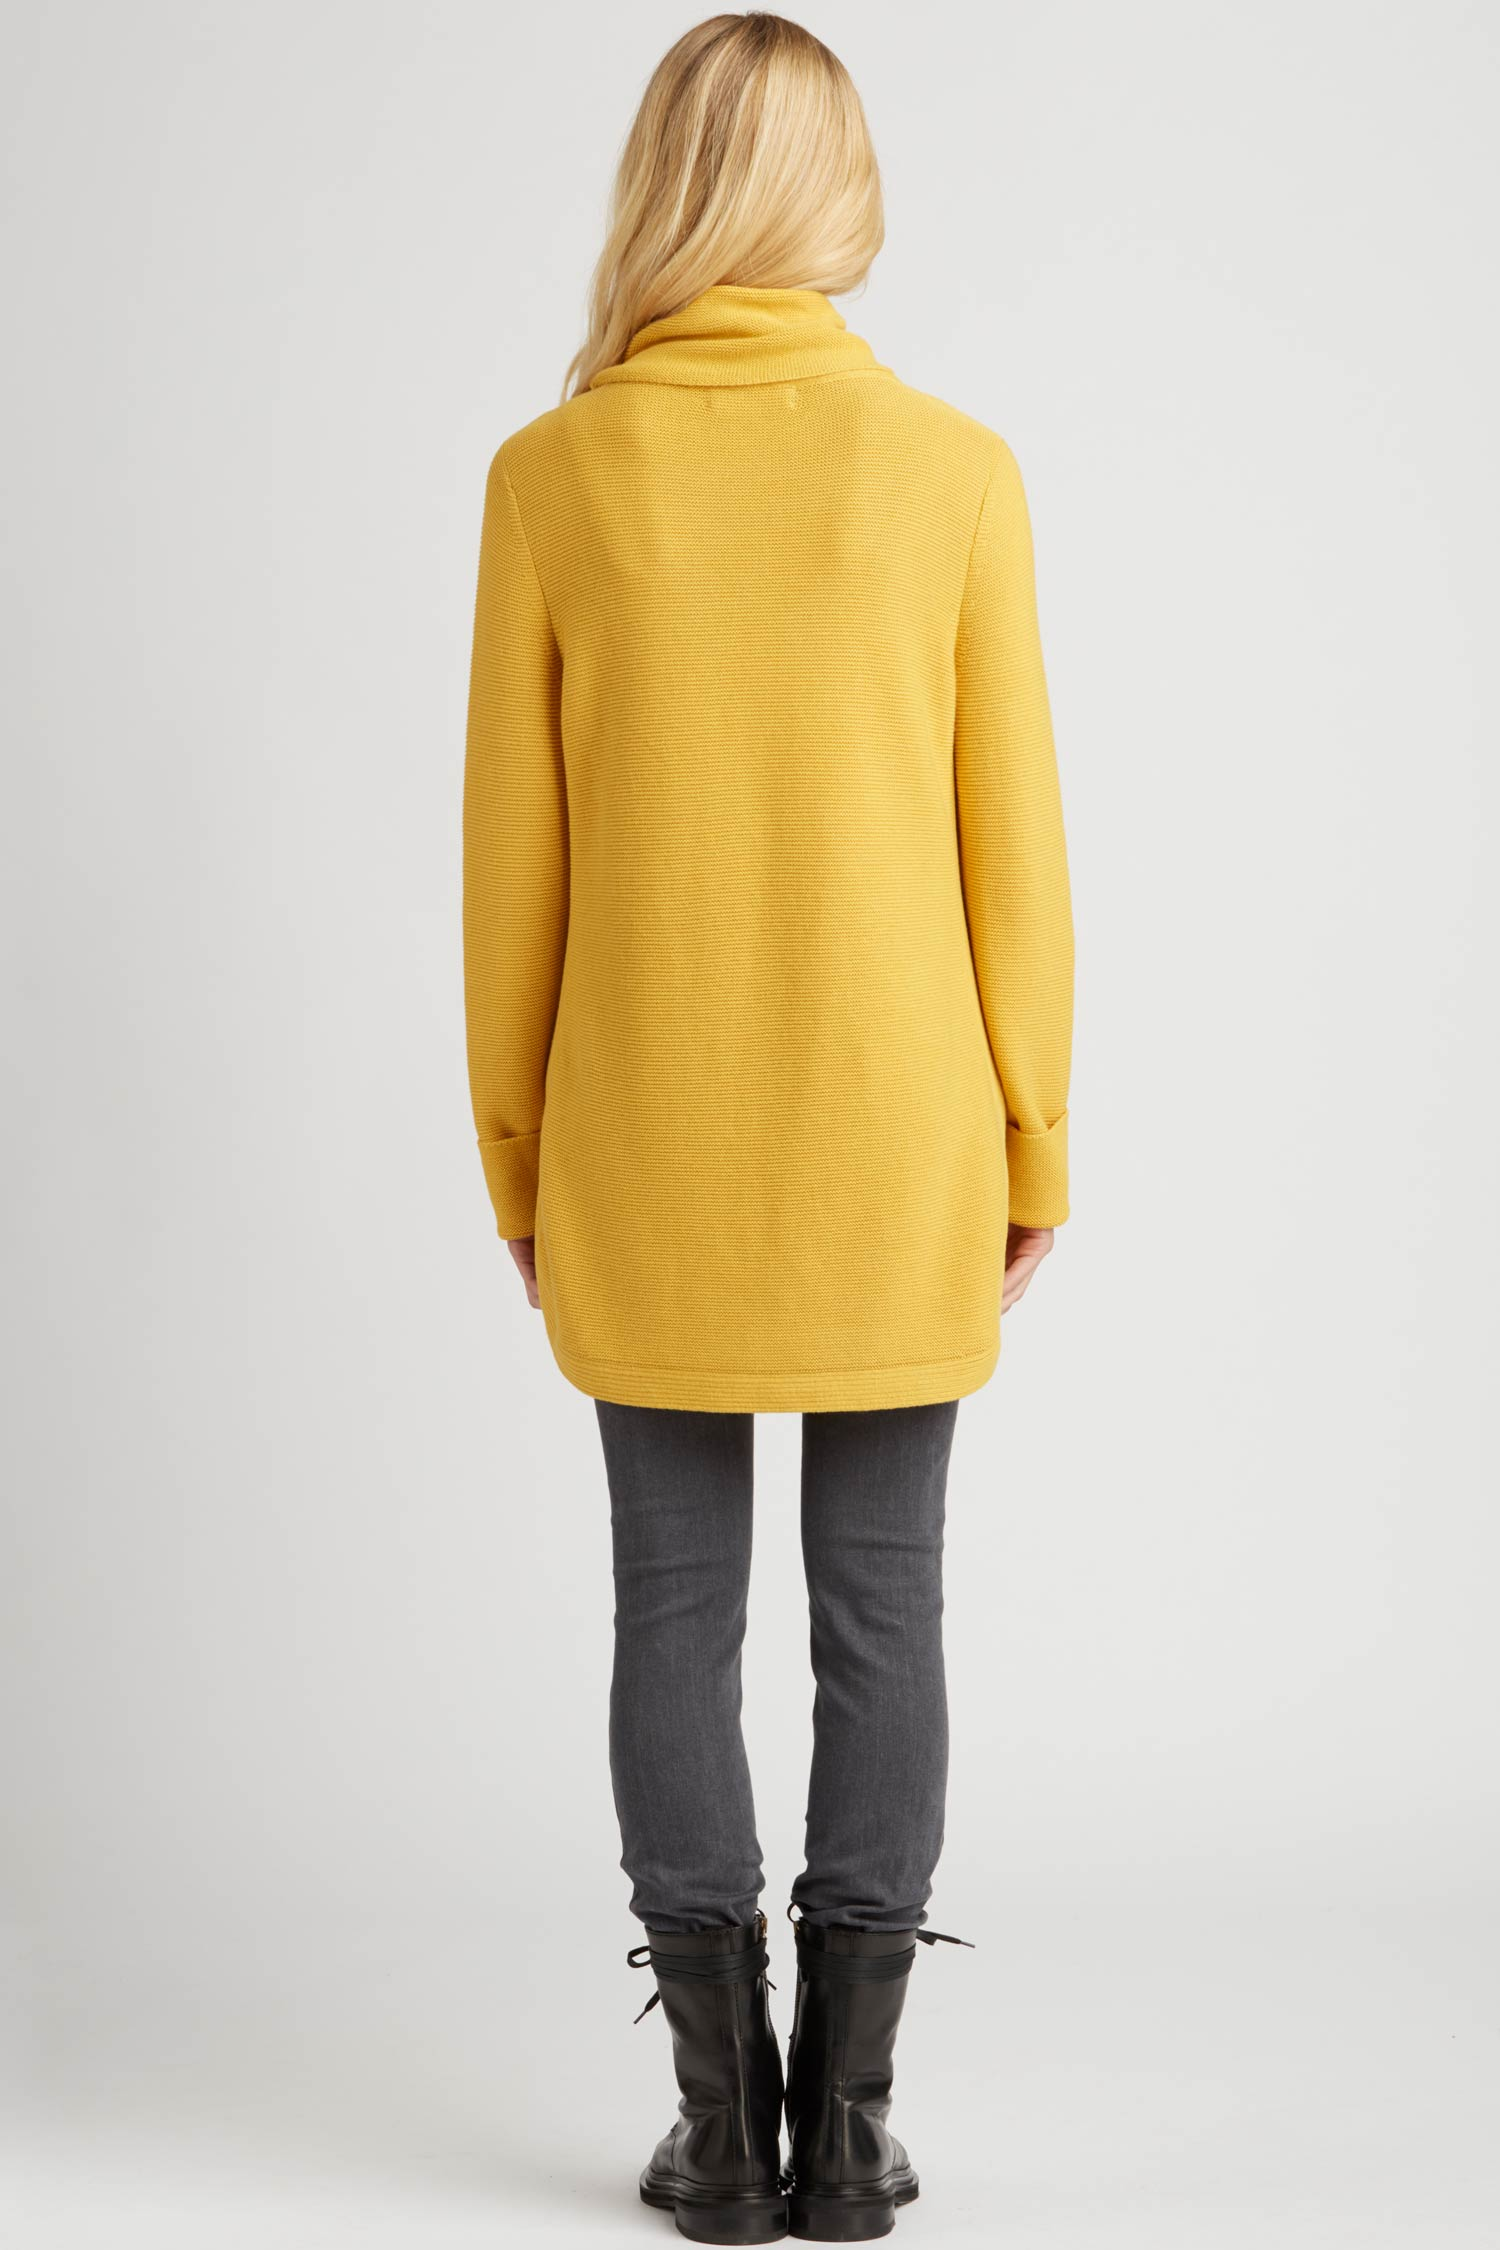 Womens Funnel Neck Sweater | Organic Cotton Clothing | Yellow